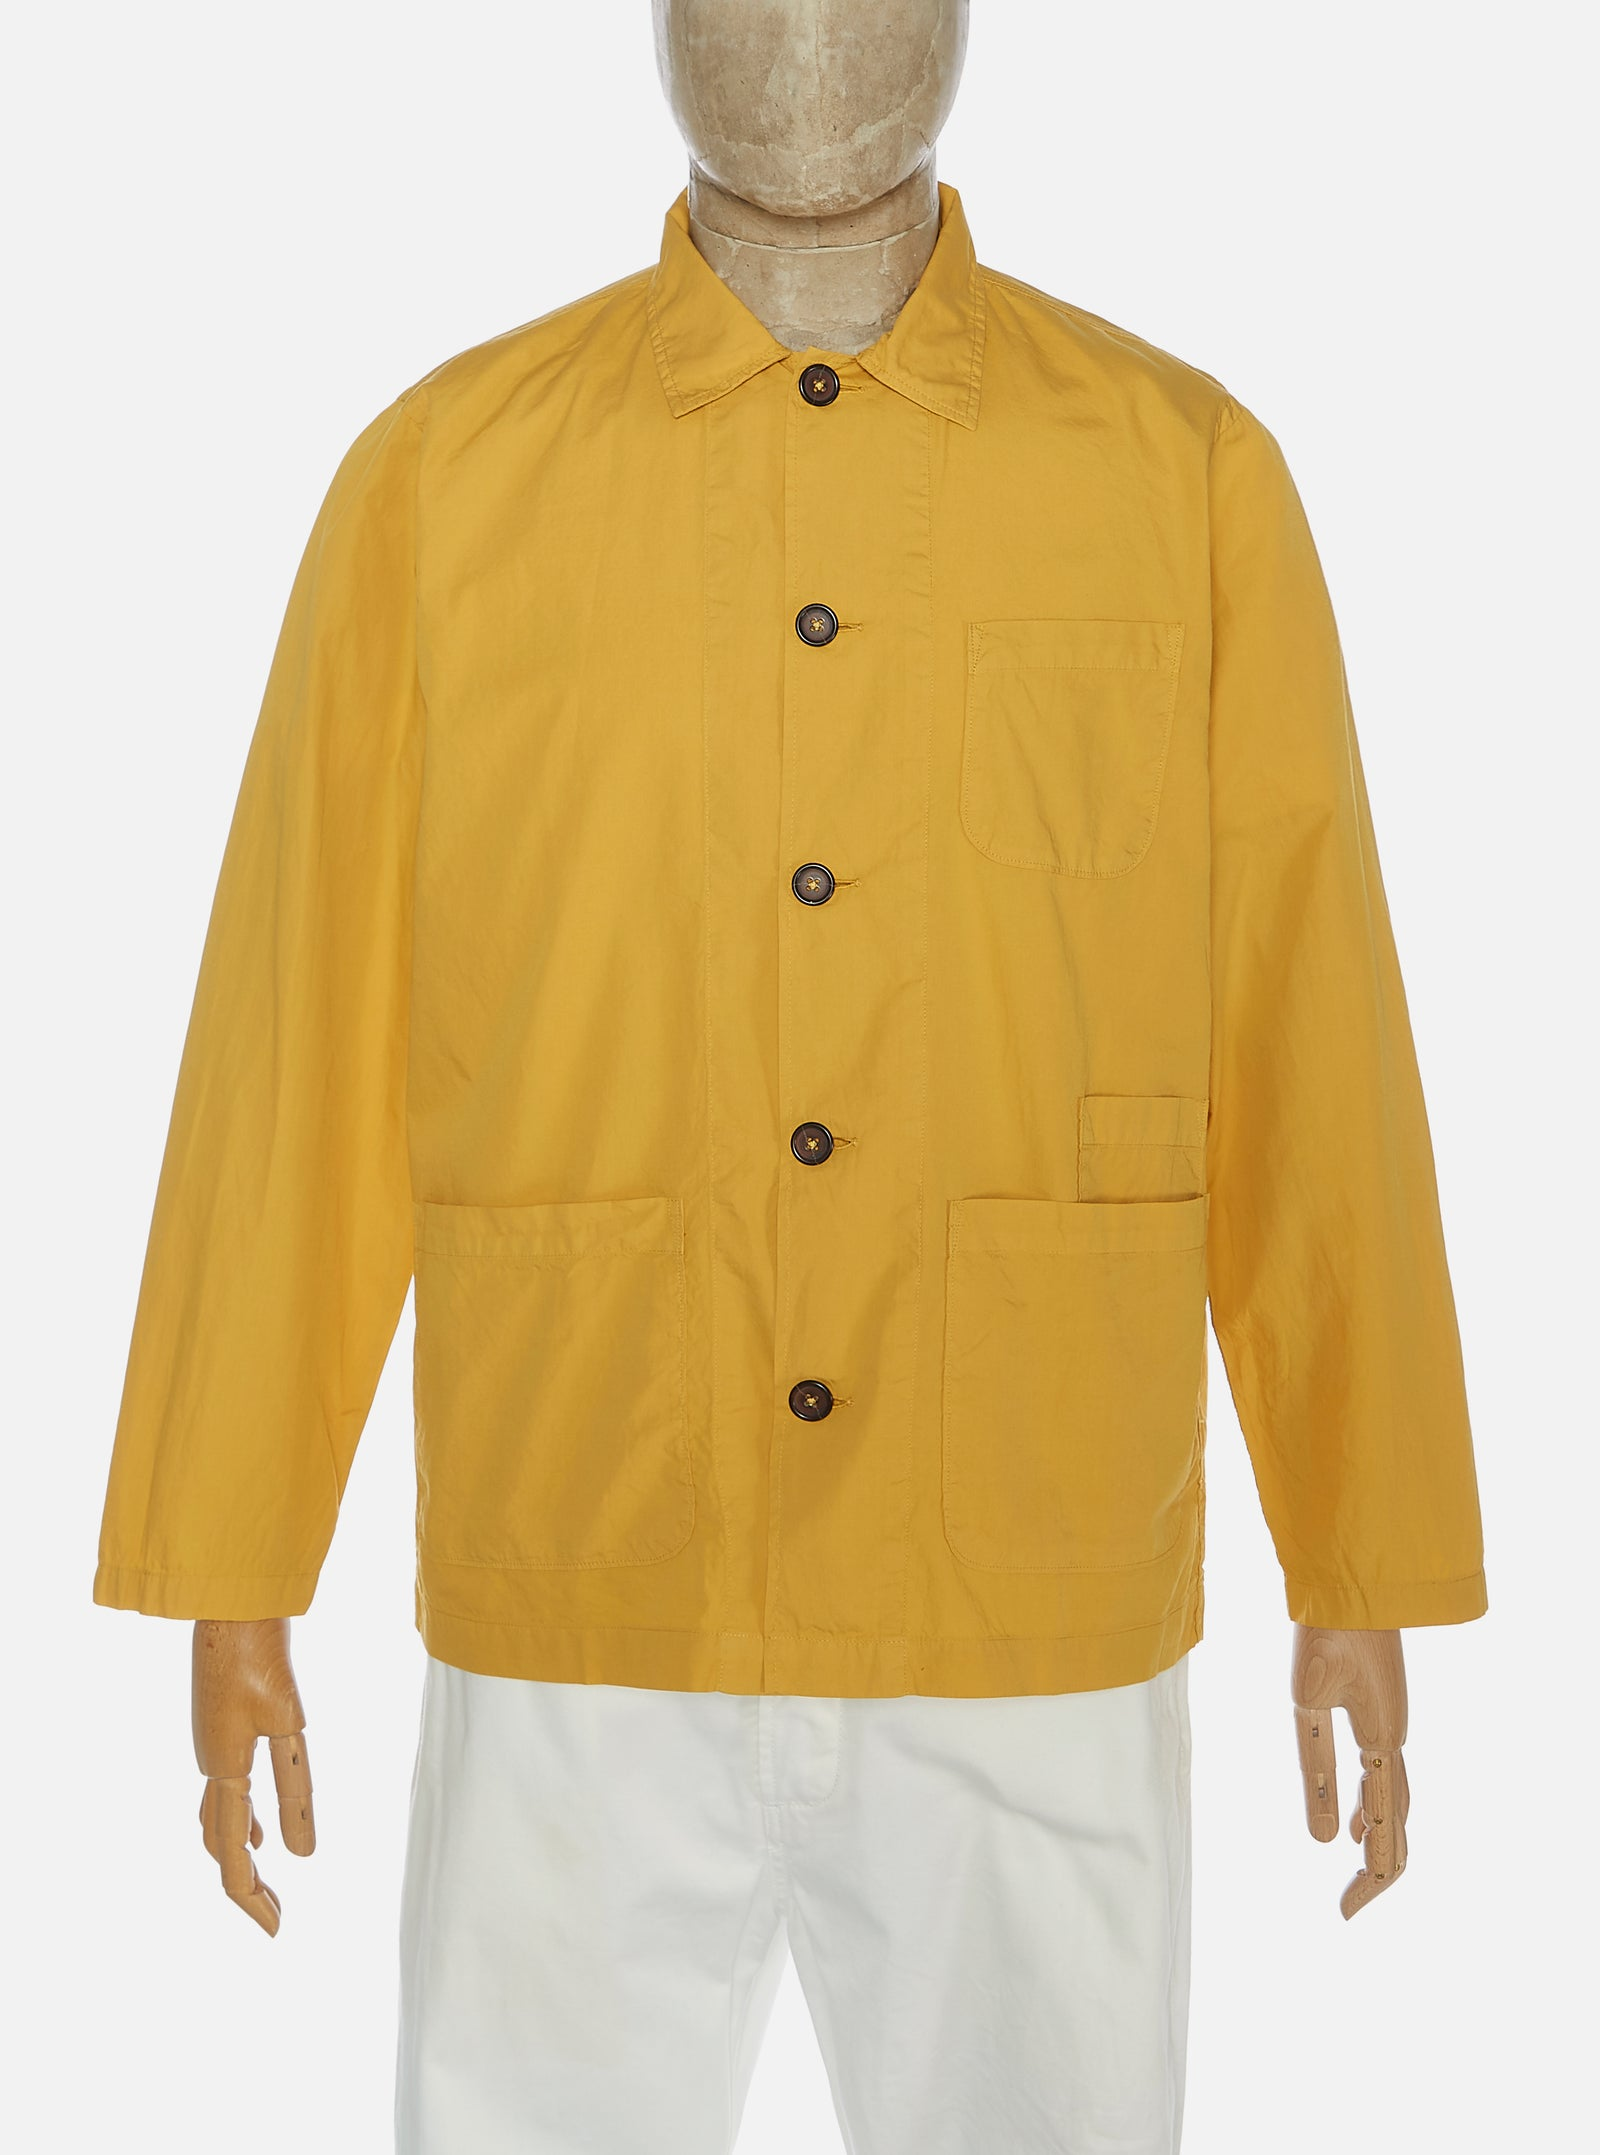 Universal Works Bakers Overshirt in Gold Poplin